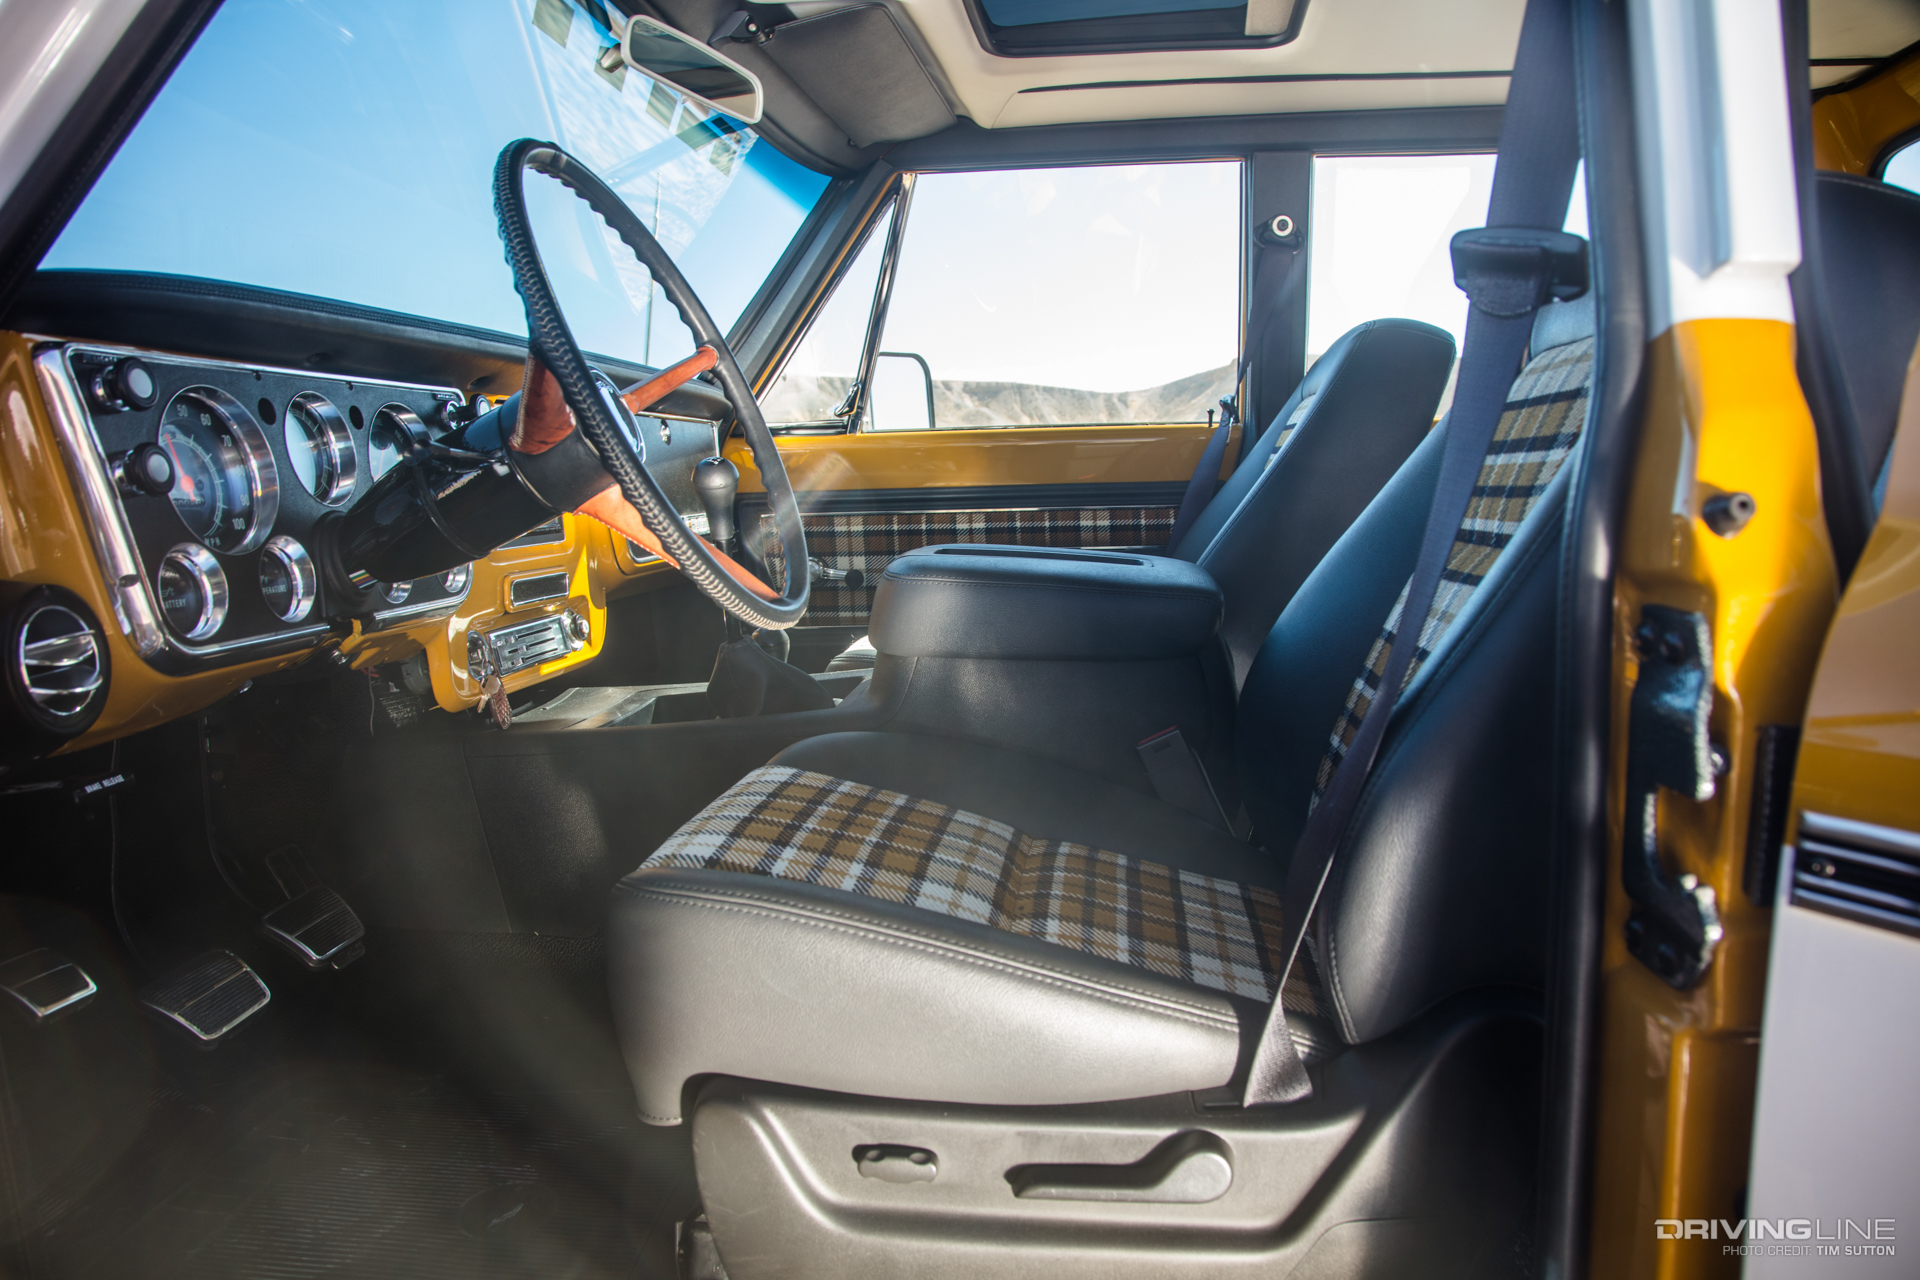 K Crew Cab Rtech Fabrication Driving Line on Modern Trail 70